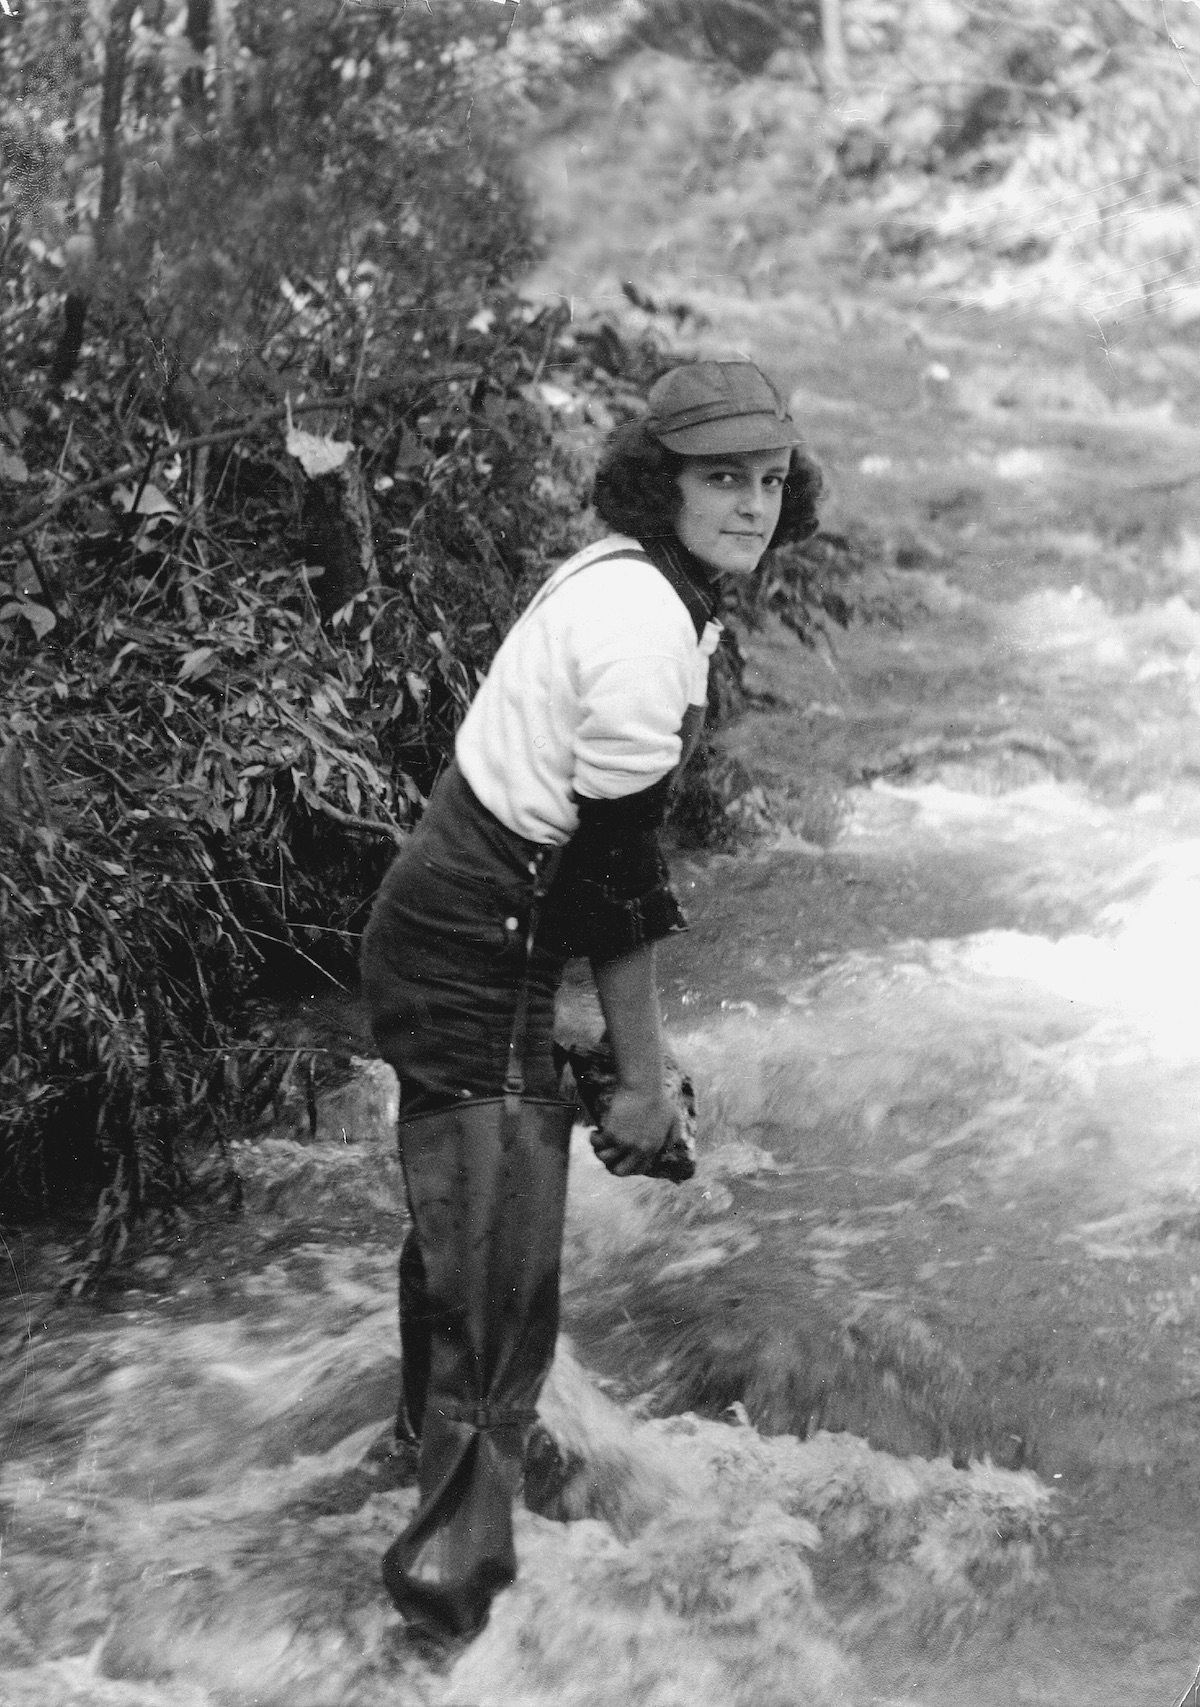 Hawley on her family's Vermont property. [Photo] Courtesy of the Michael and Meg Leonard collection